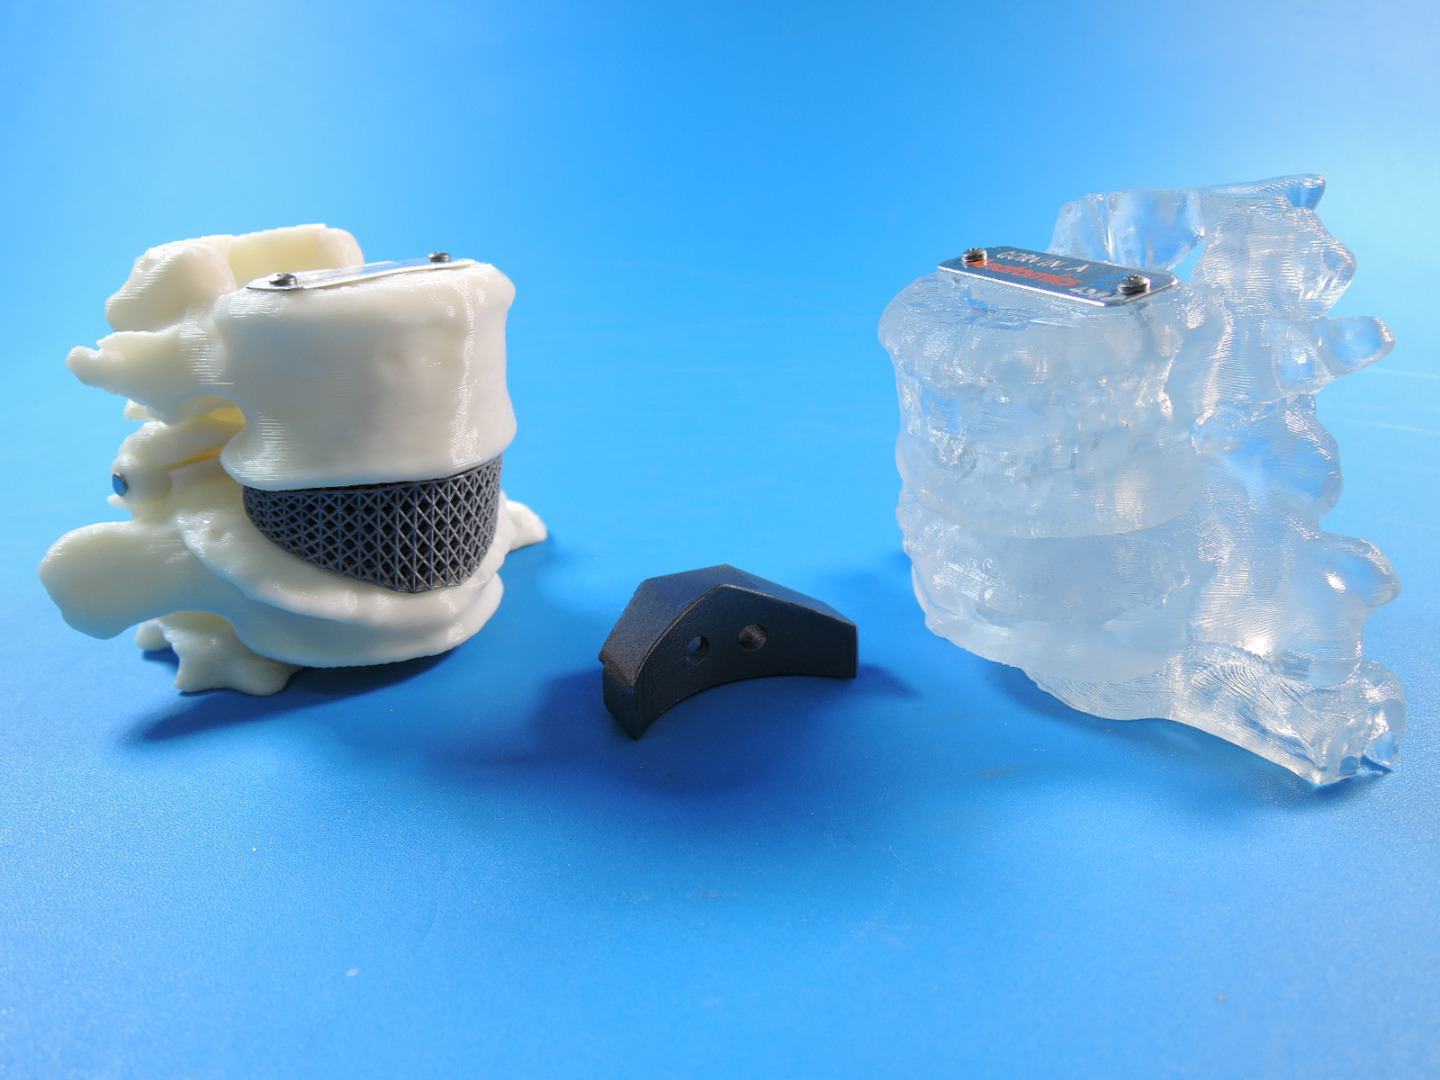 3D Printed Spine Cage Implant.jpg